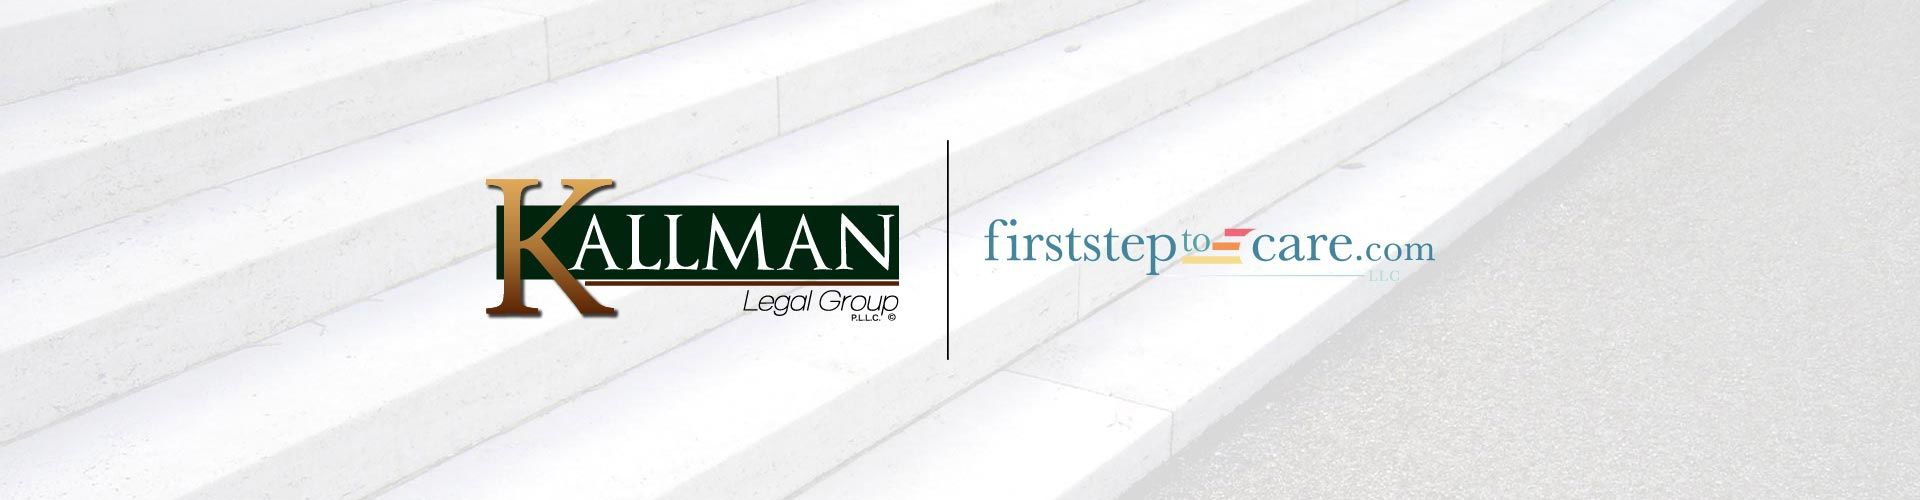 Kallman Legal Group - First Step to Care - Power of Attorney